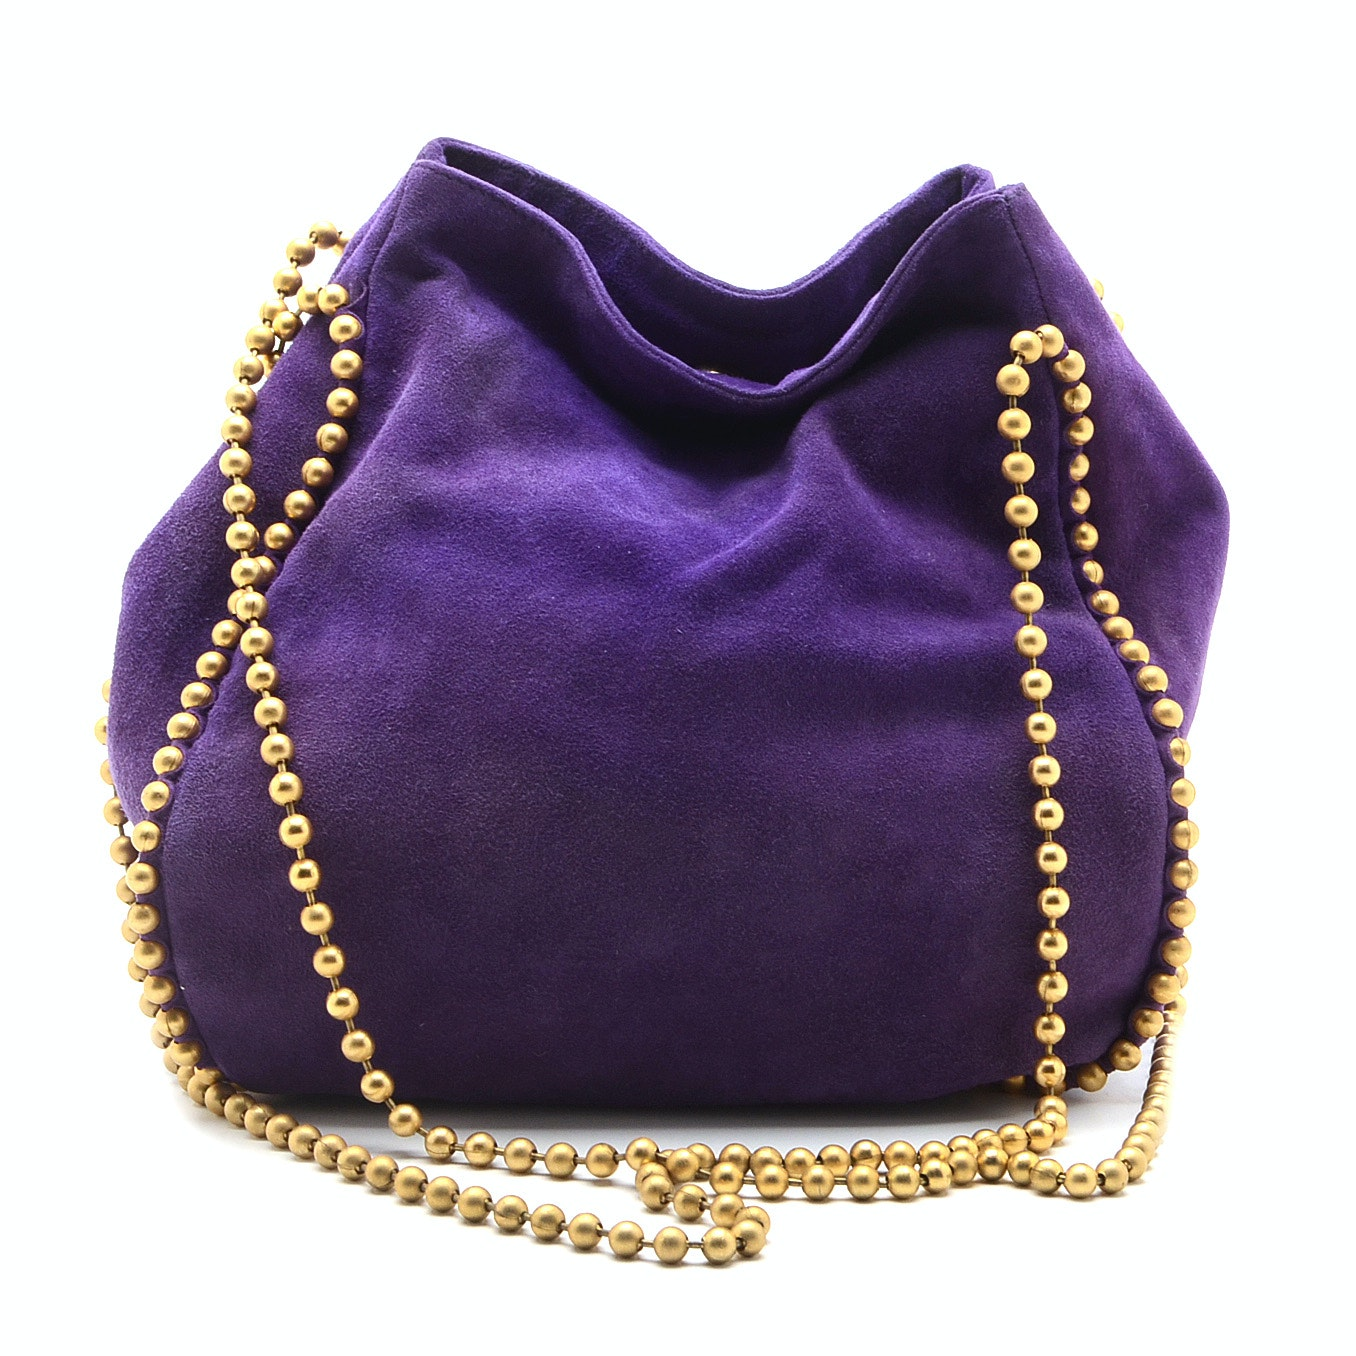 De Vecchi by Hamilton Hodge Purple Suede Hobo Bag with Ball Bead Chain Shoulder Straps